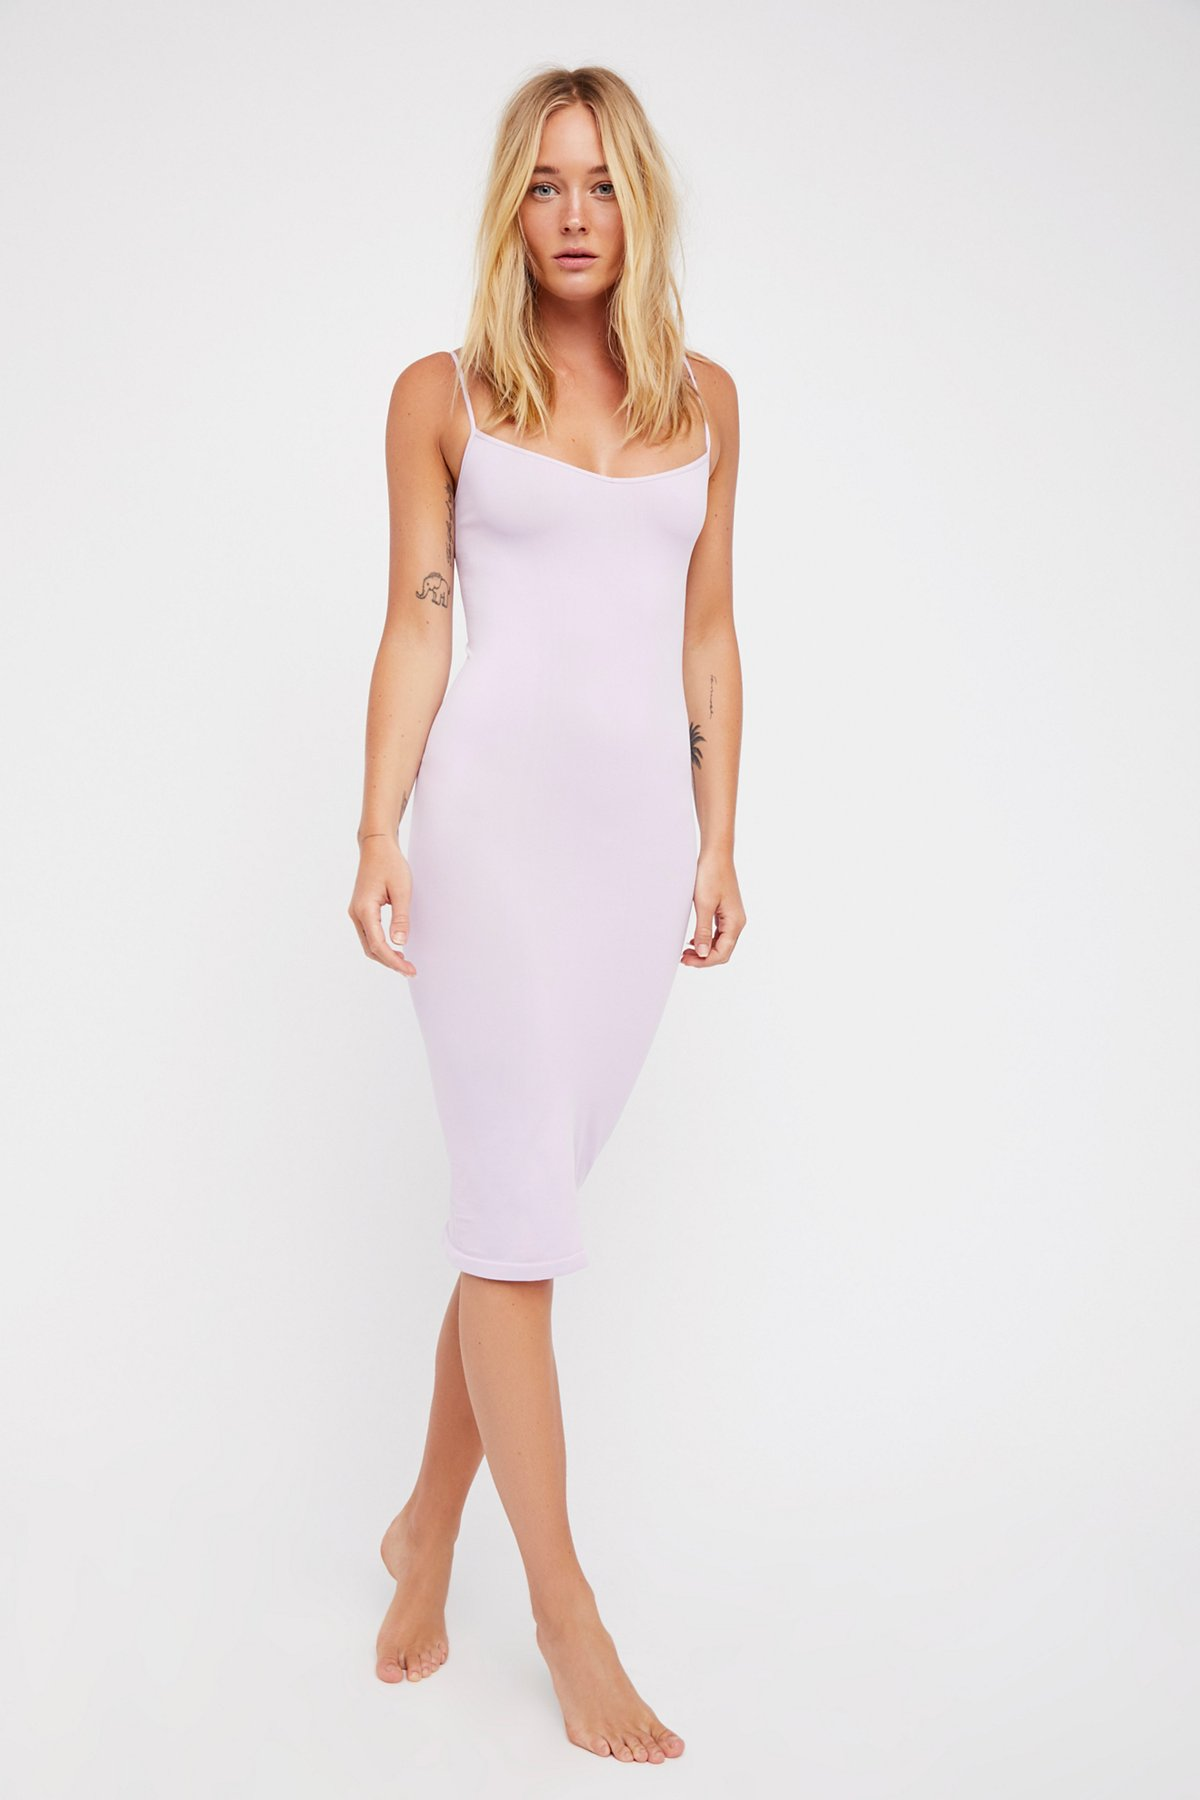 Free-People-Intimately-New-Womens-Tea-Length-Seamless-Slip-Dress-Womens-Xs-L-34 thumbnail 8